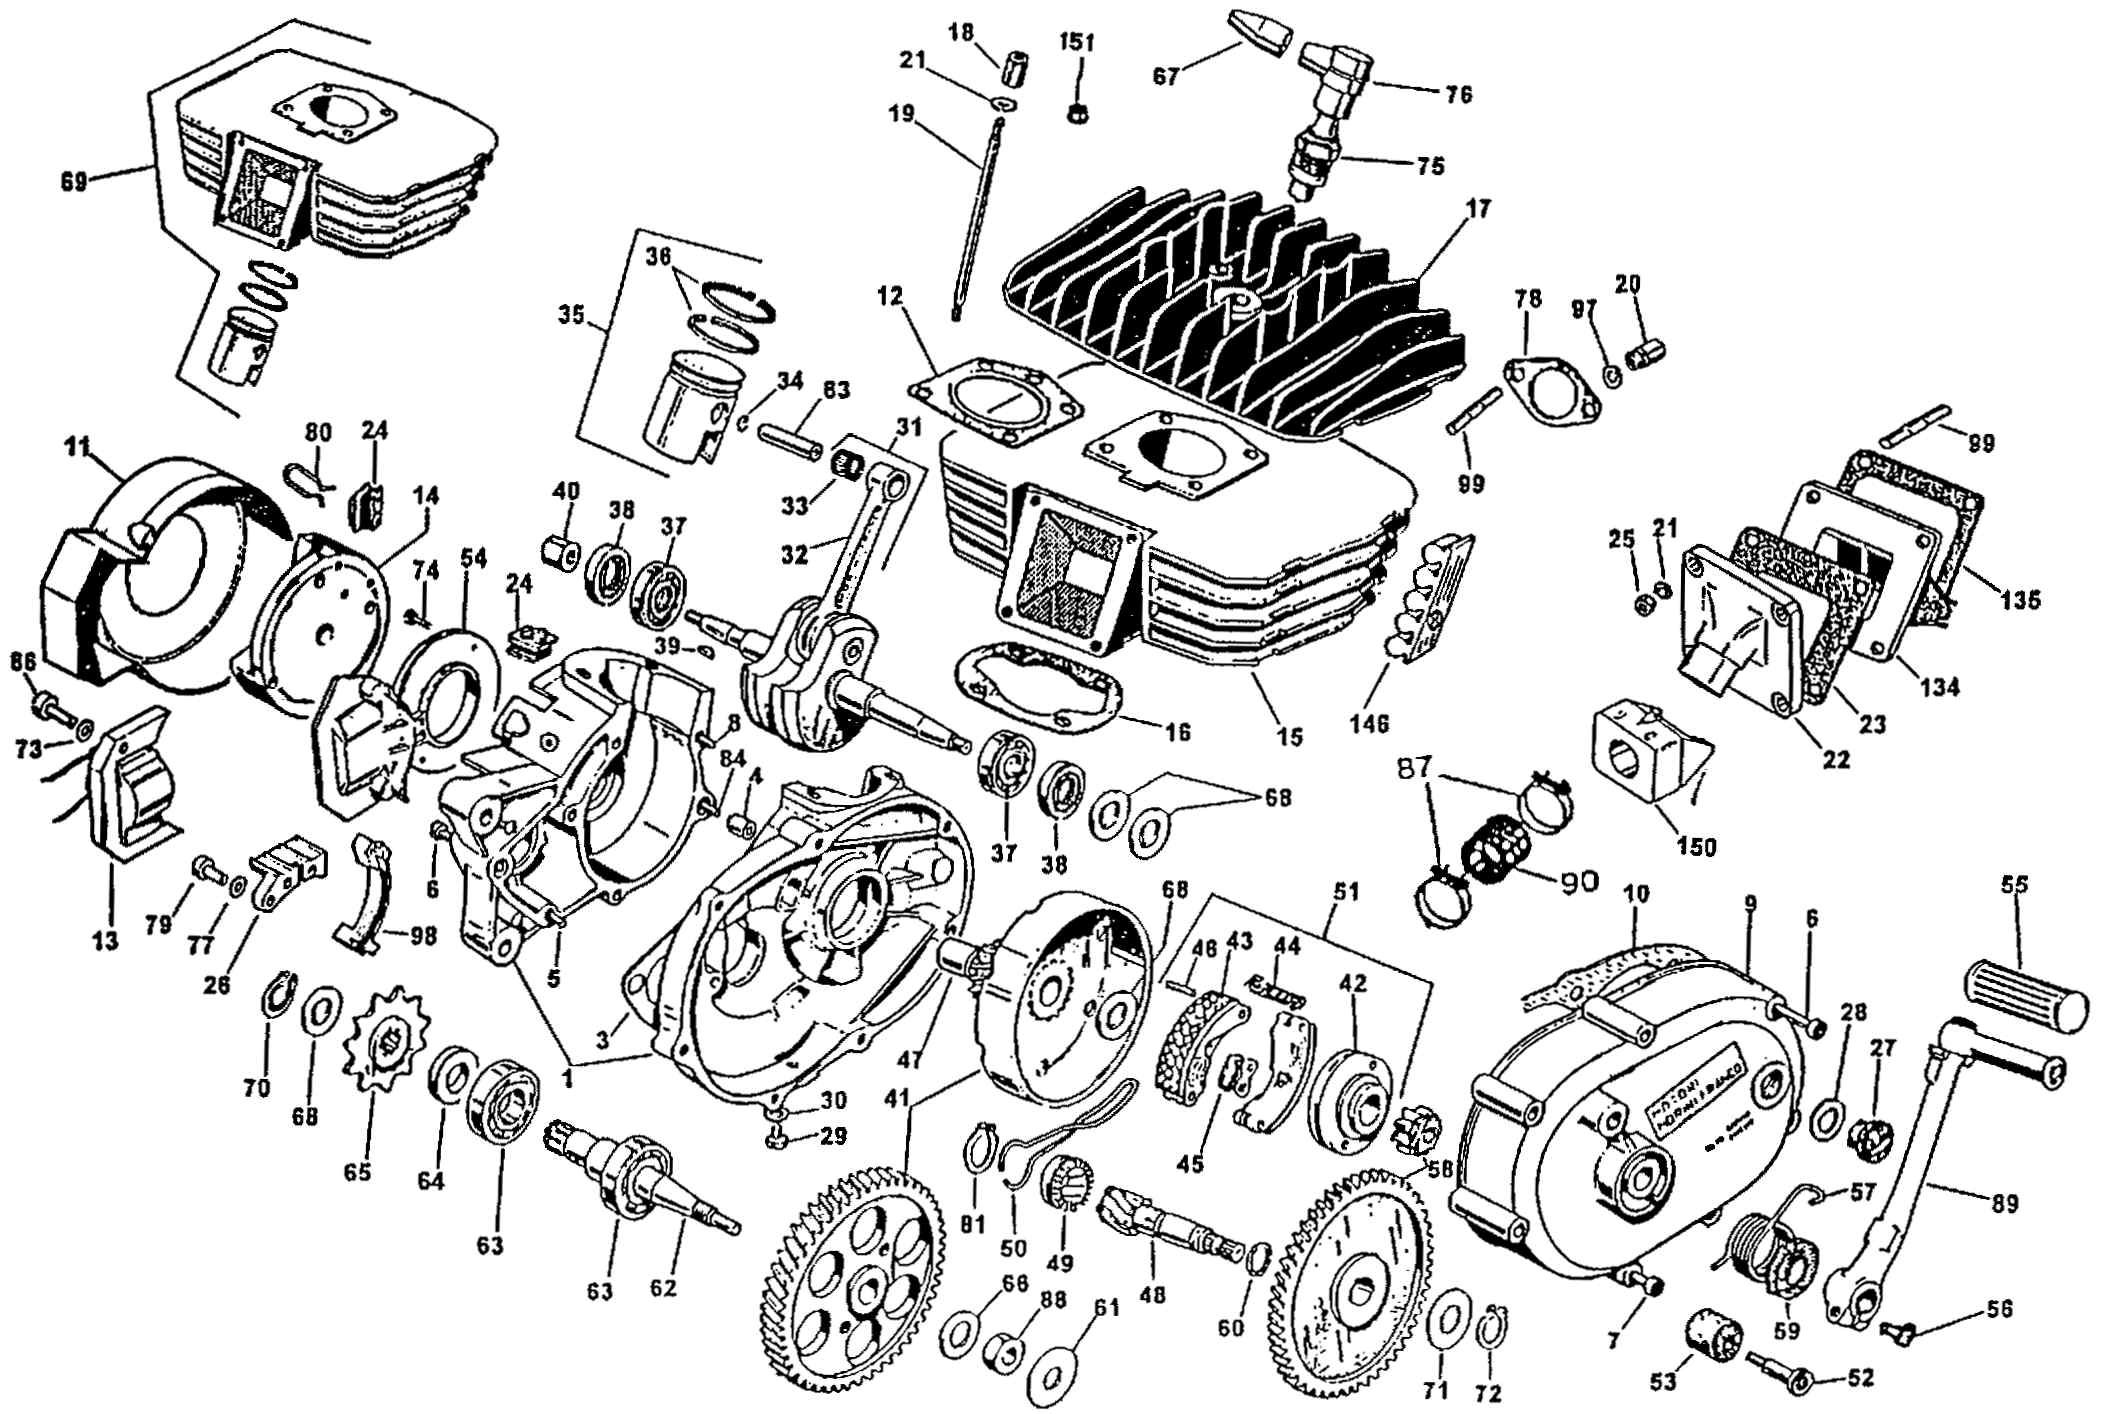 hight resolution of car mechanical drawings technical illustration technical drawings car engine motorcycle engine exploded